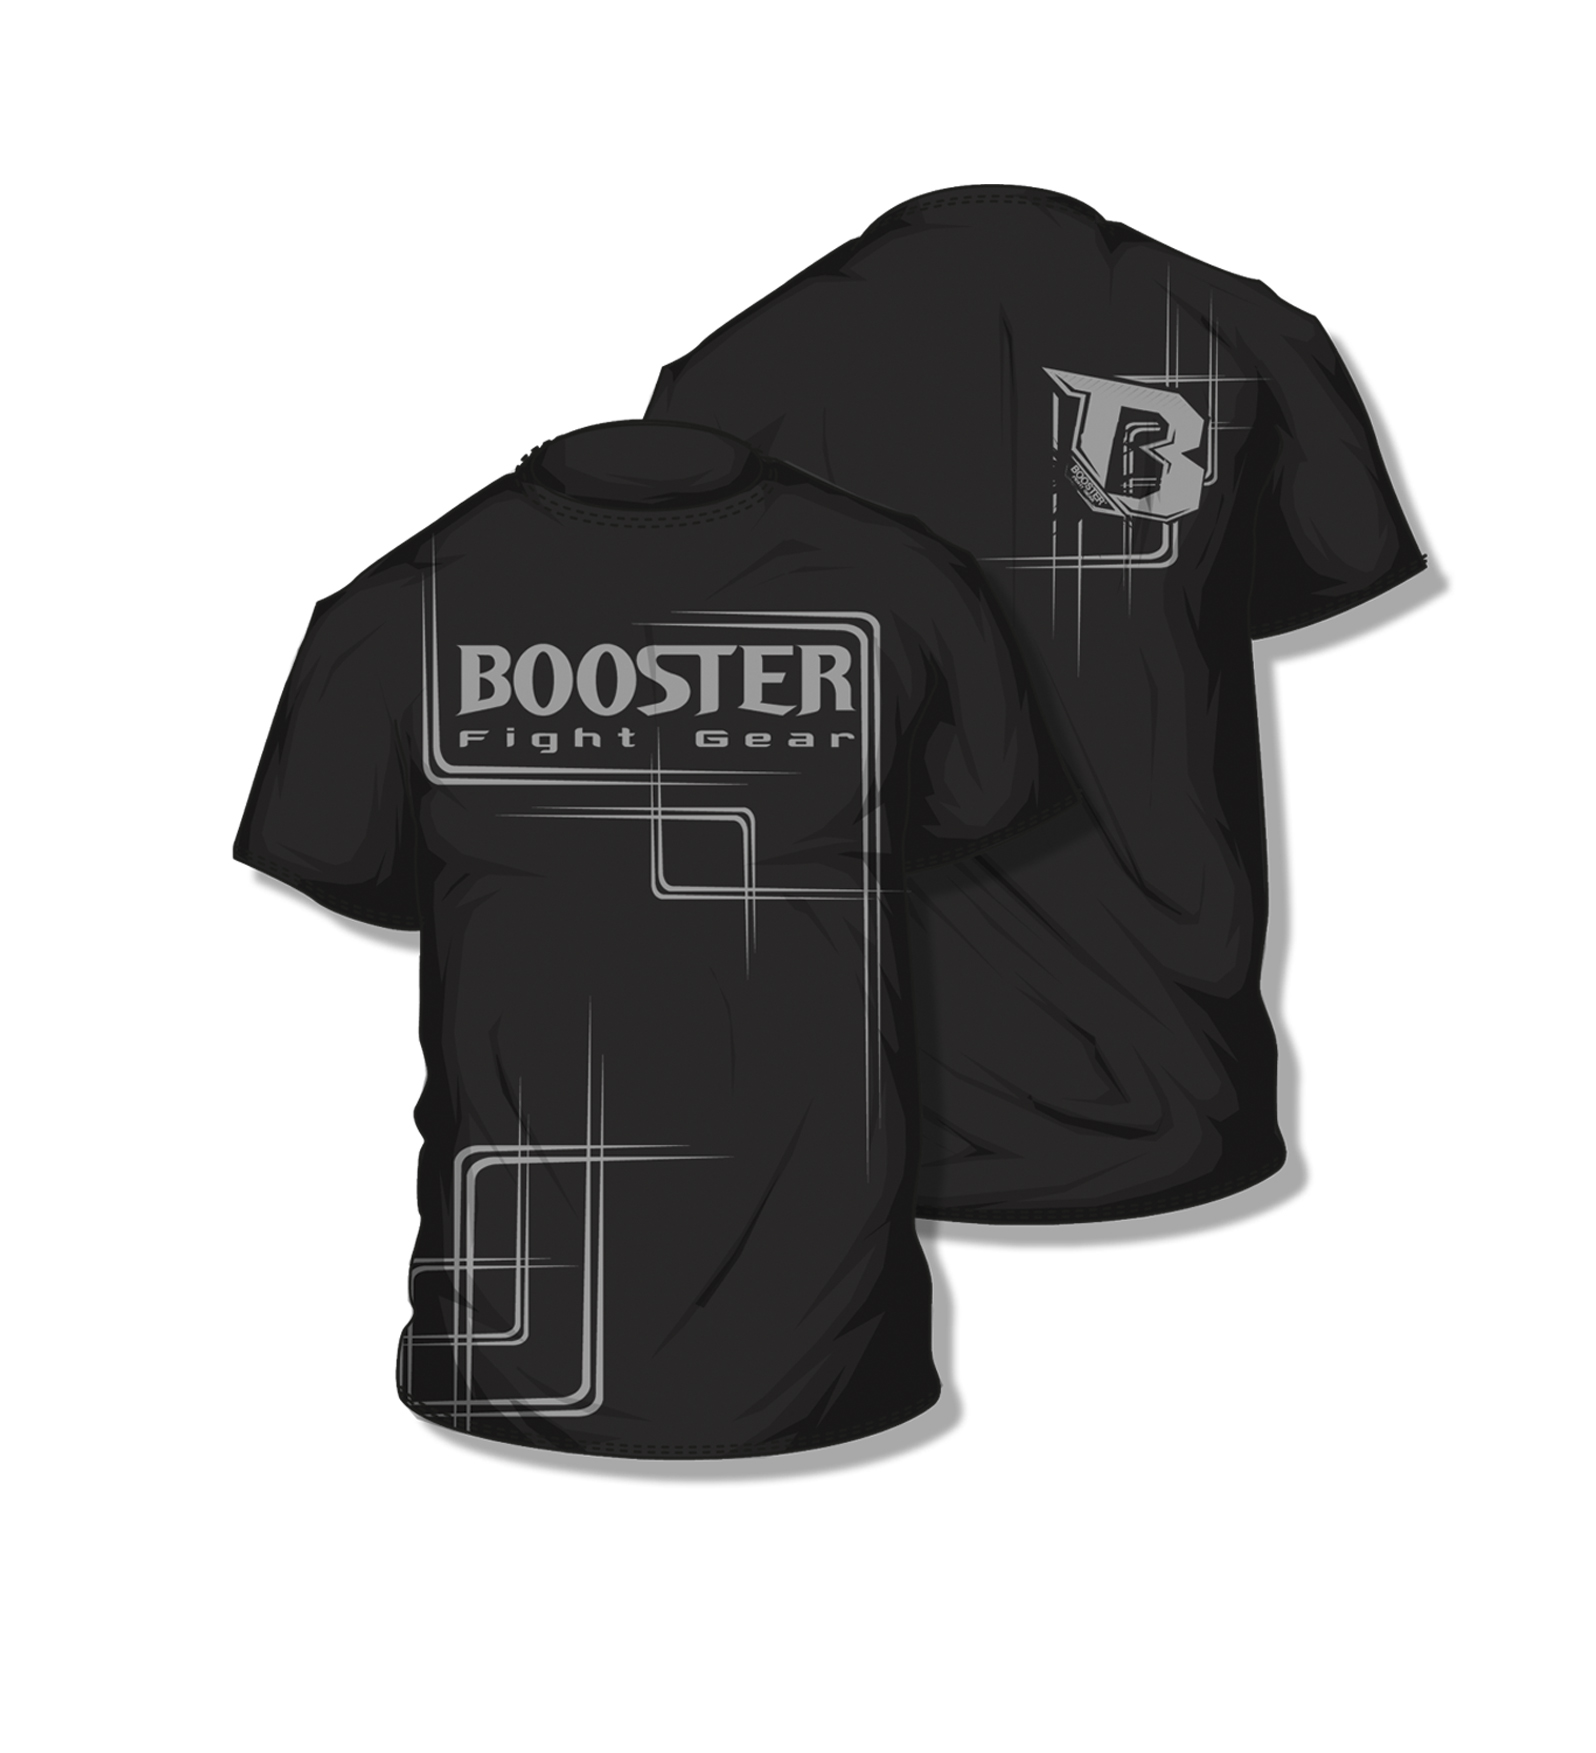 Booster  BC Walk out shirt black - XL